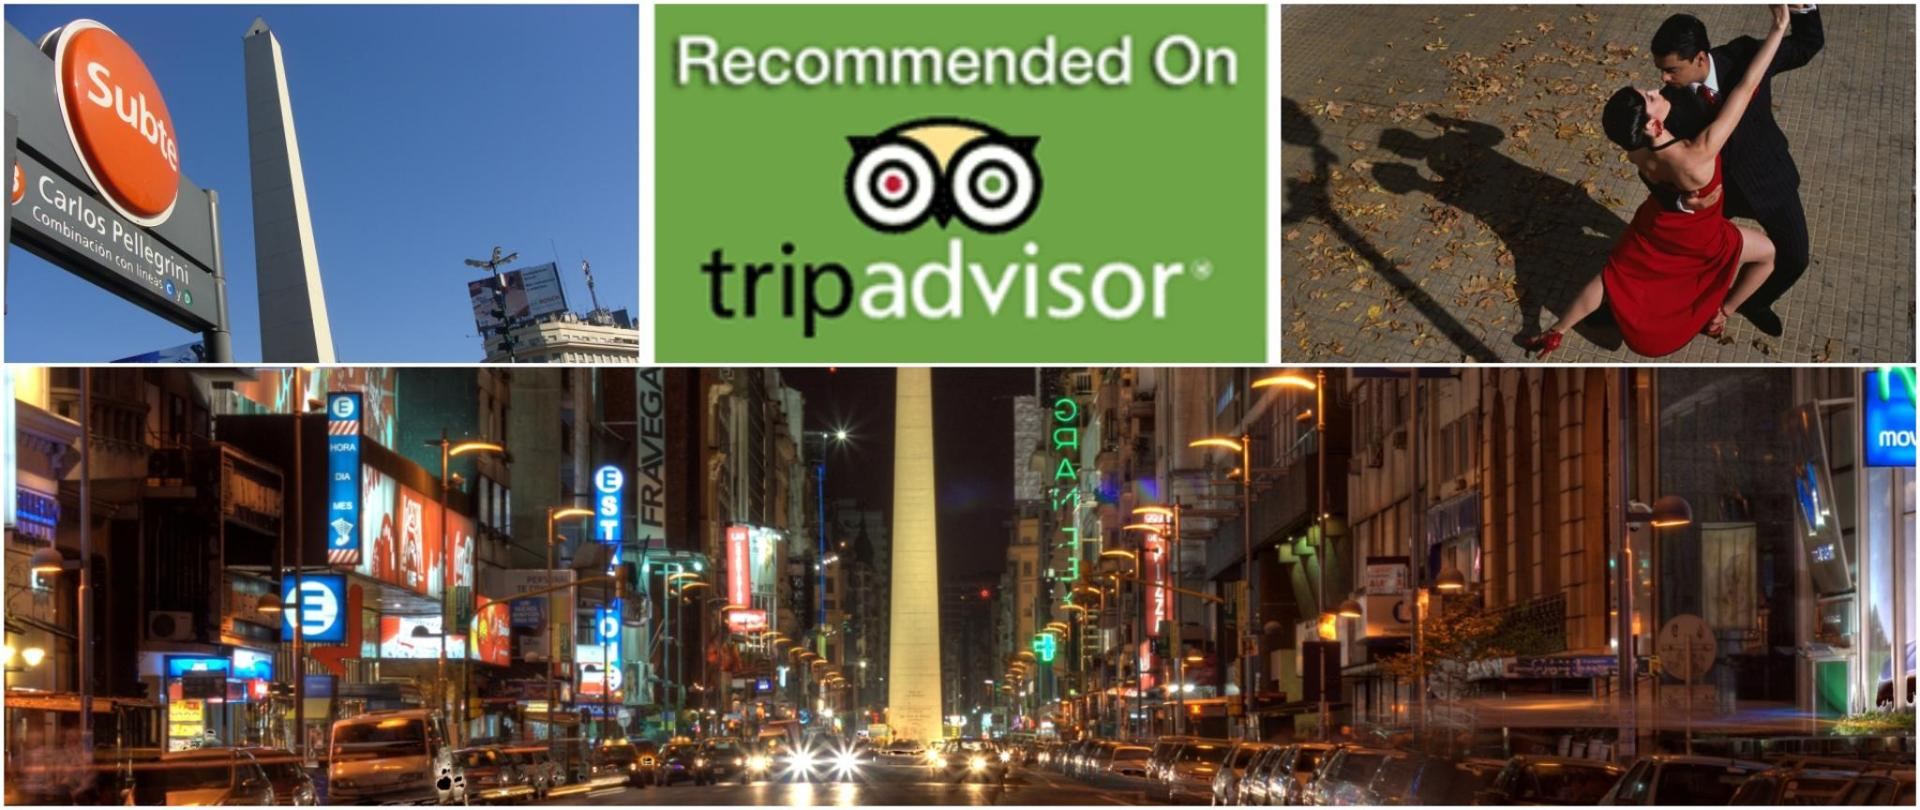 HOMESTAY BUENOS AIRES RECOMMENDED ON TRIP ADVISOR.jpg